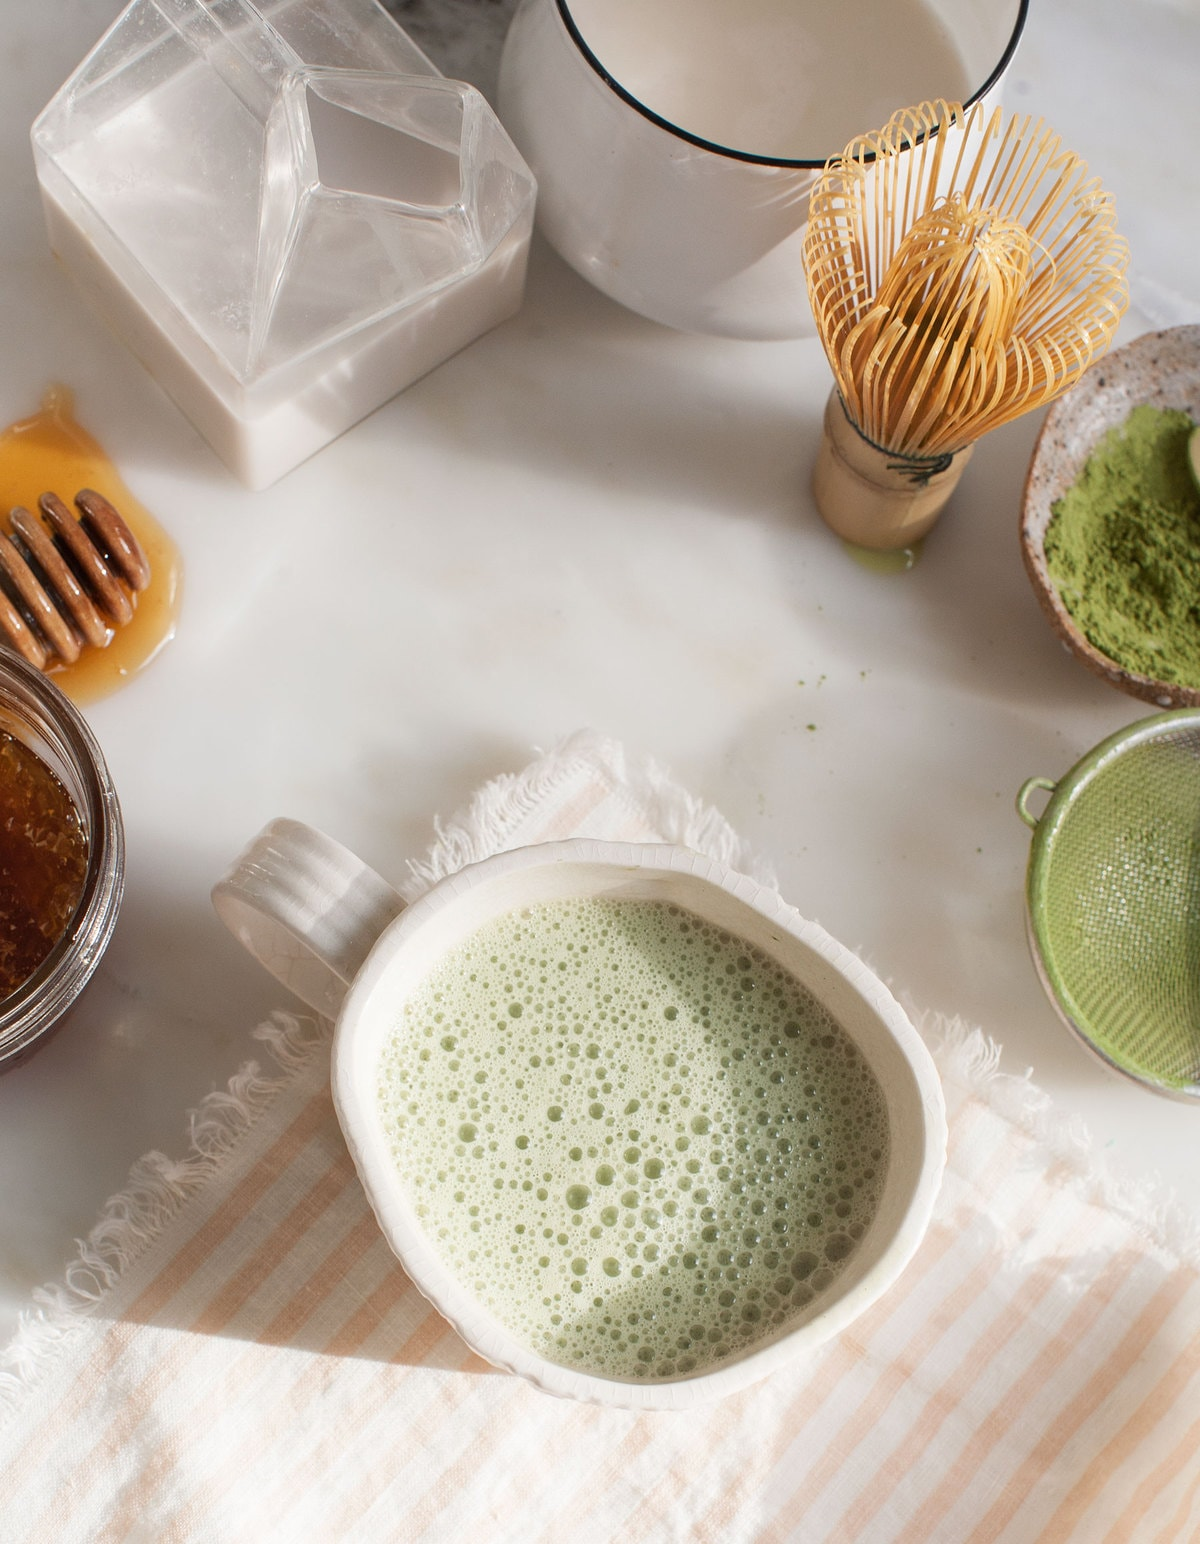 Make a Matcha Latte